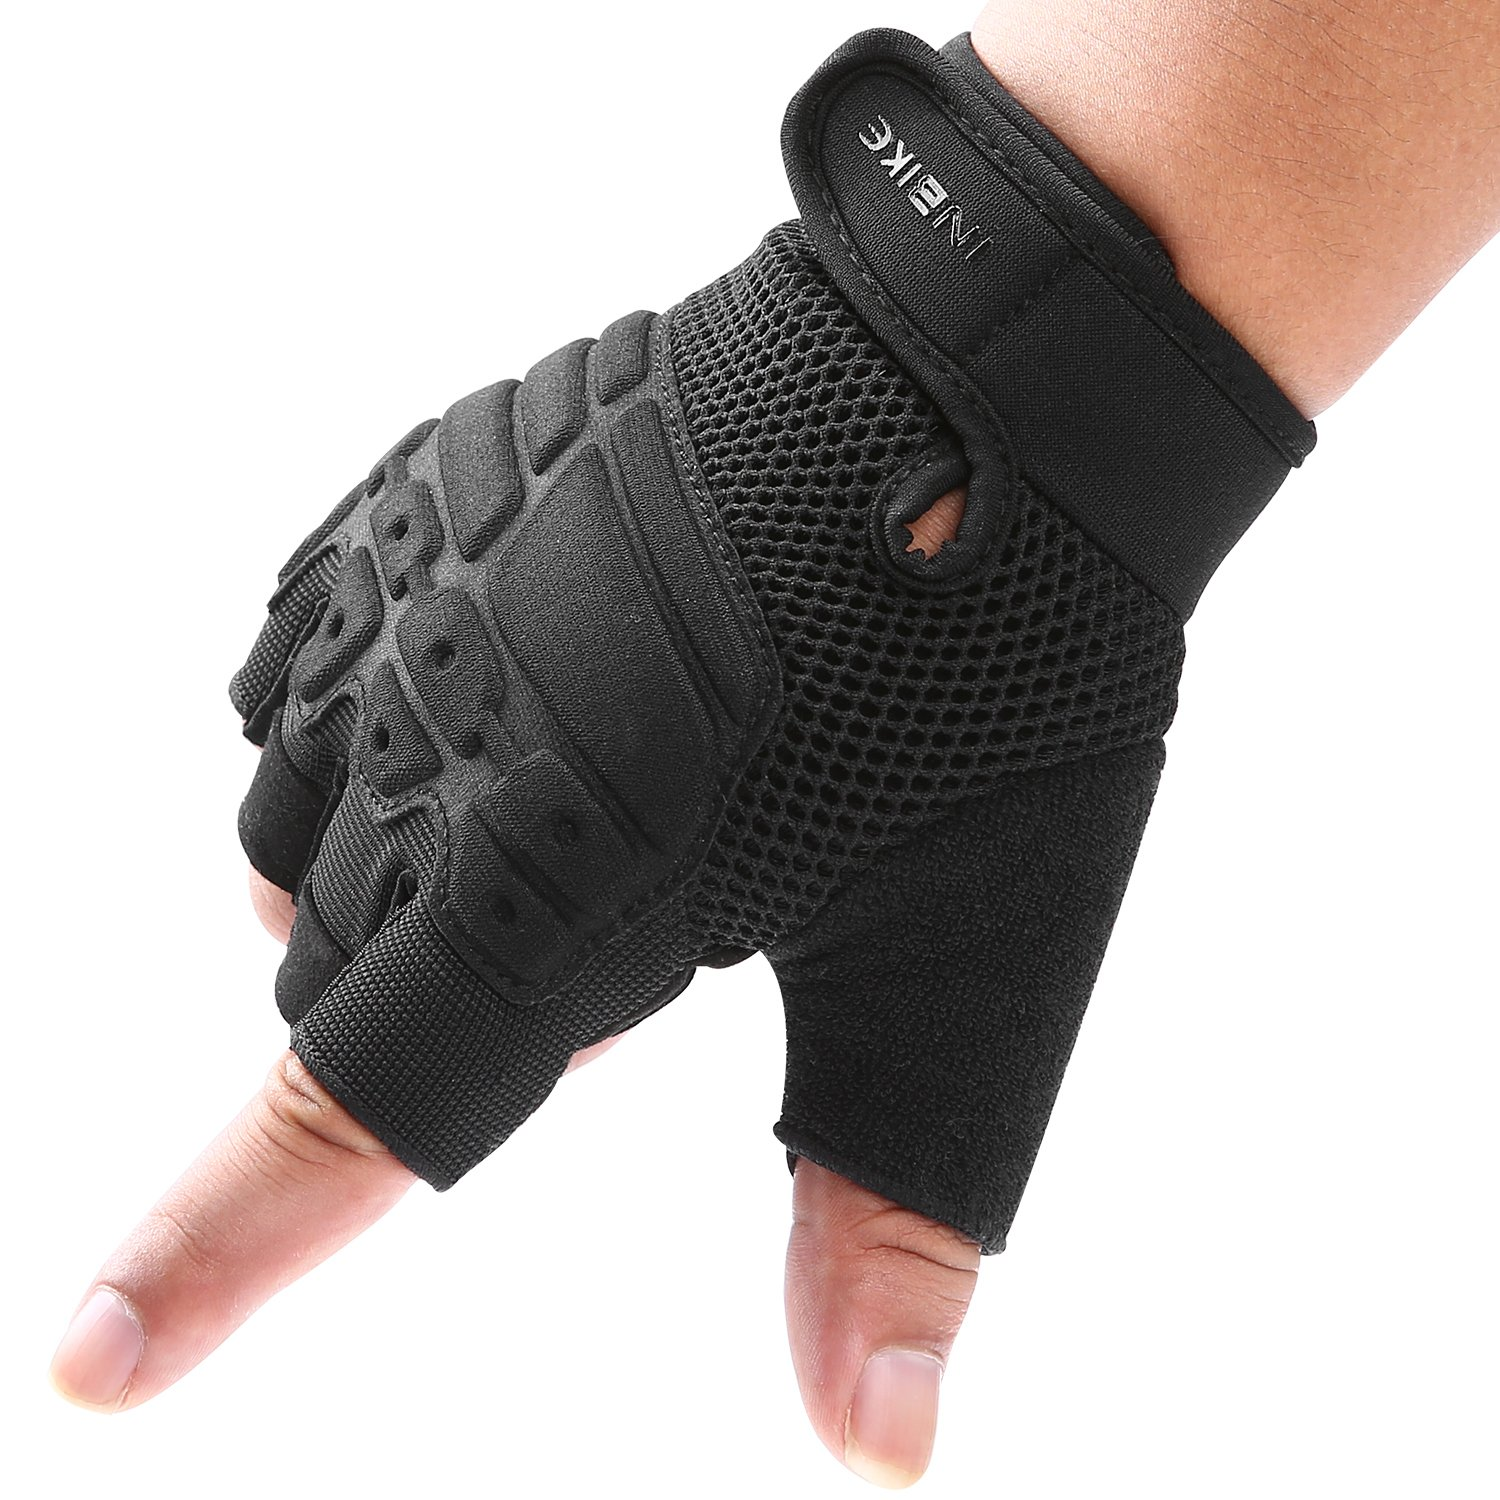 INBIKE Workout Gloves Half Finger Palm Pad Tactical Gloves Cycling Gloves Fit for Climbing//Hiking//Camping//Laser Tag//Motorcycle Men Women